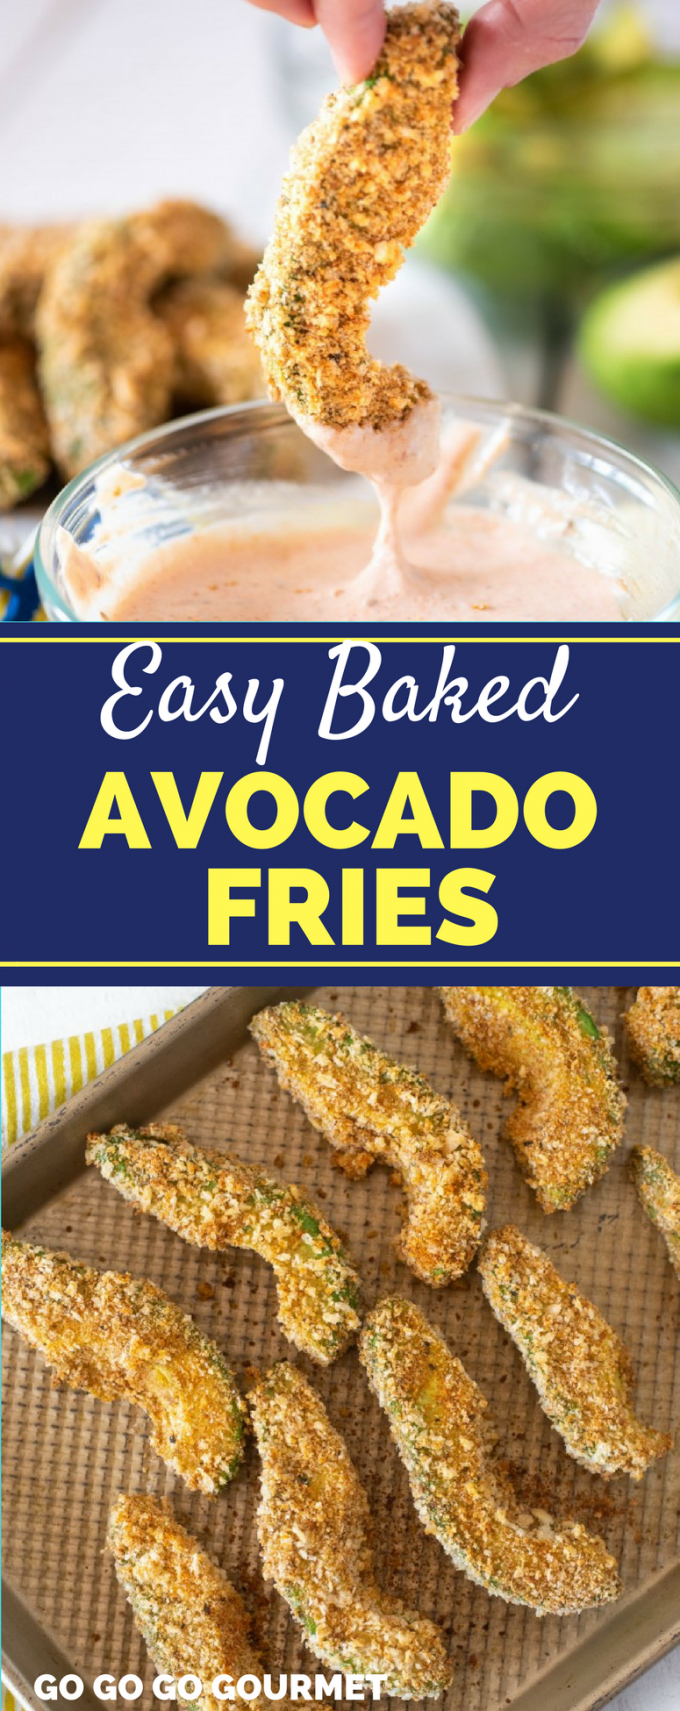 This Easy Baked Avocado recipe makes the perfect low carb, healthy side dish! Baked right in the oven and paired with an incredible dipping sauce, they just can't be beat! #healthysidedishrecipes #healthysnacks #easyhealthyrecipes #bakedavocadofries #gogogogourmet via @gogogogourmet